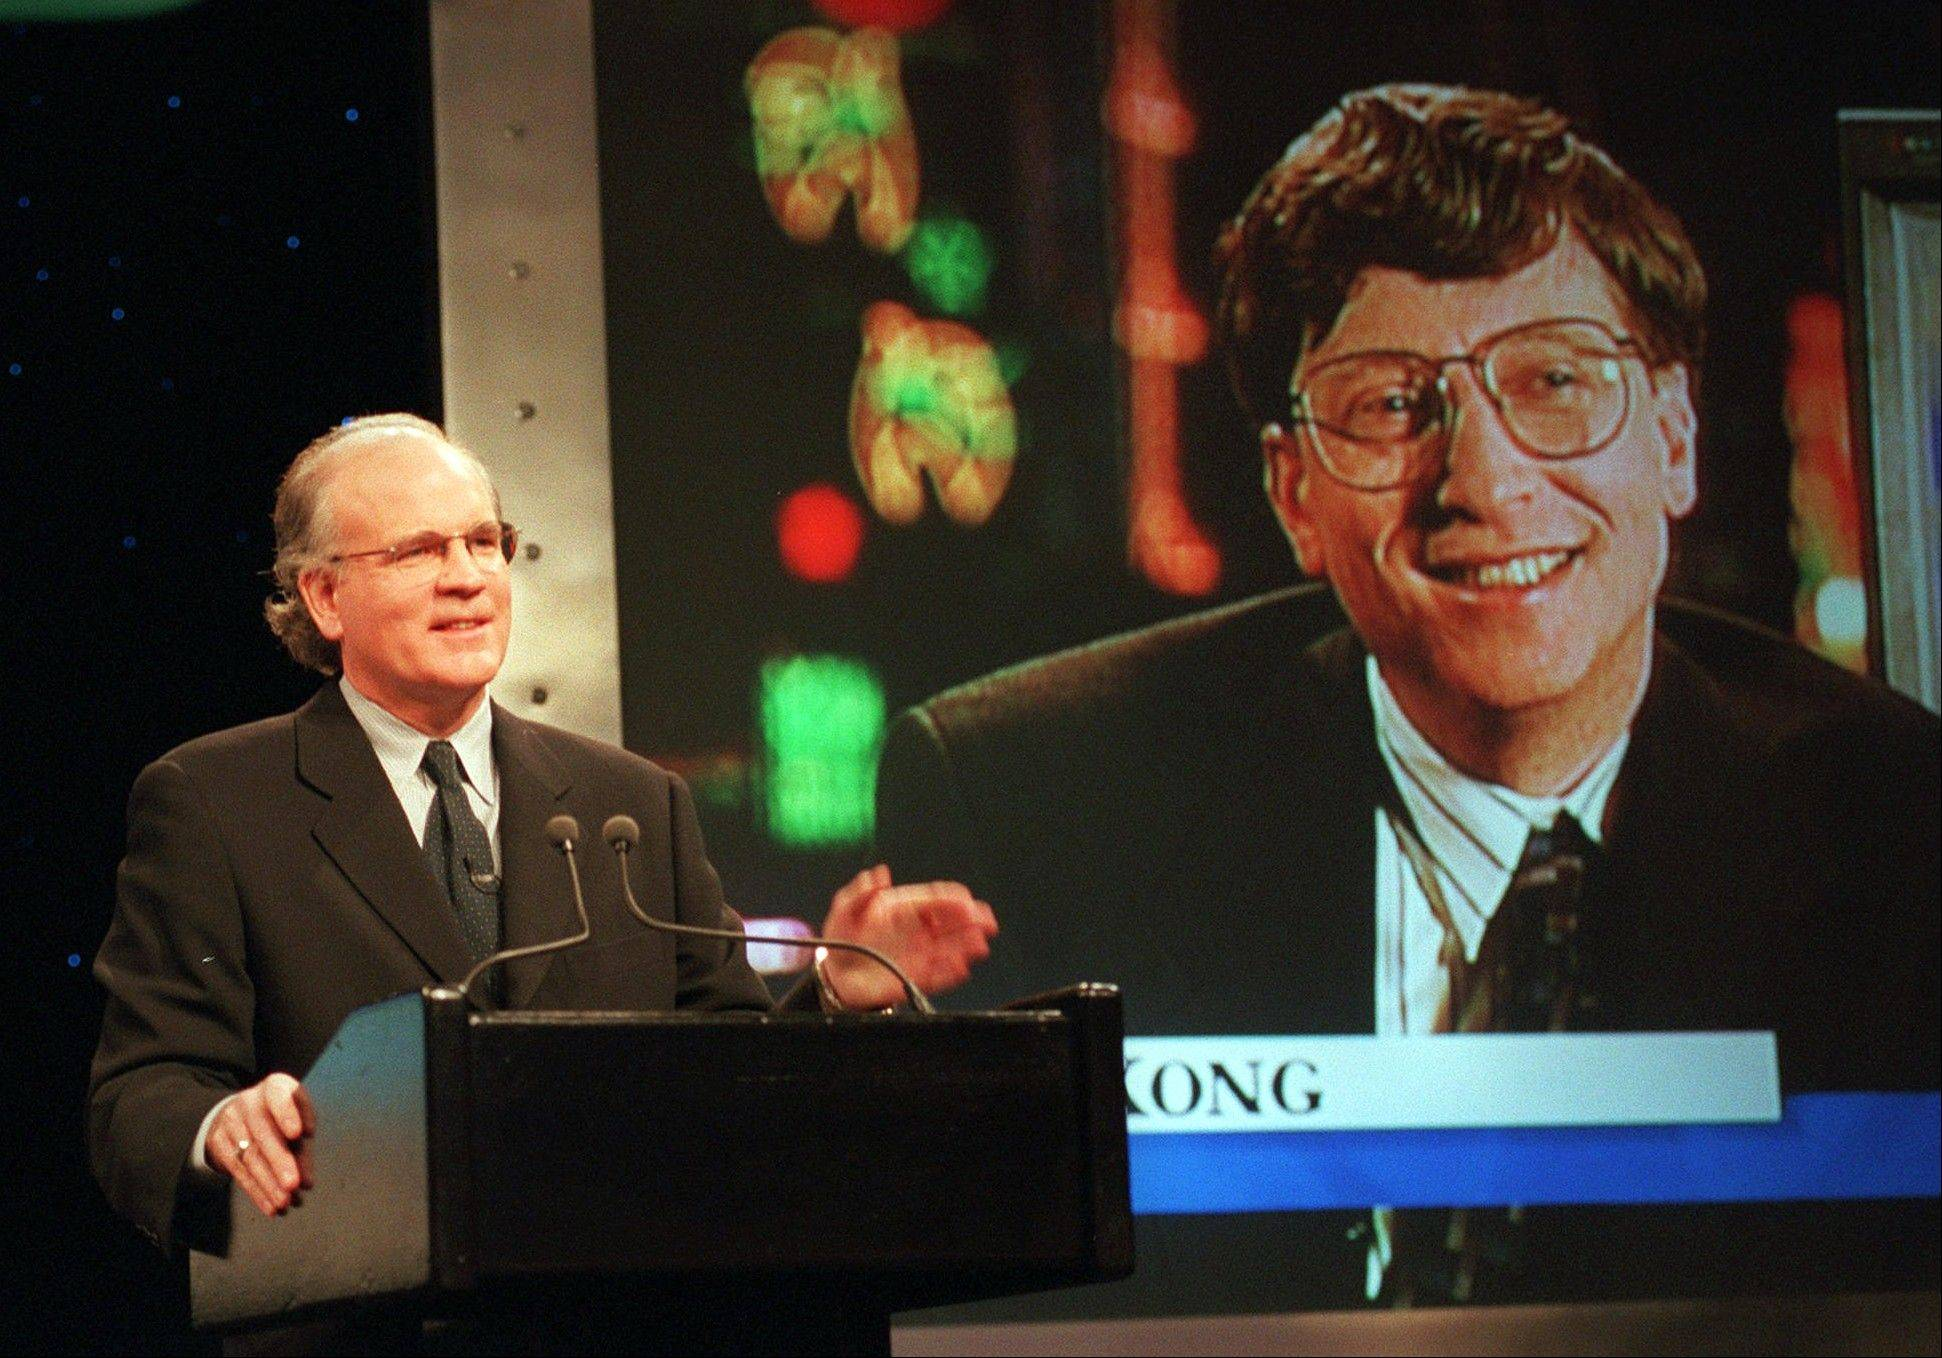 In this Dec. 14, 1995, file photo, Robert Wright, president and chief executive officer of NBC, speaks in New York with Microsoft Chairman Bill Gates, displayed on screen, speaks from Hong Kong, during a news conference announcing that NBC and Microsoft would form a joint venture to start a cable news channel and related online service called MSNBC. Microsoft is pulling out of the joint venture that owned MSNBC.com so it can build its own online news service. The breakup, announced late Sunday, dissolves the final shred of a 16-year marriage between Microsoft Corp. and NBC News, which is now owned by Comcast Corp.